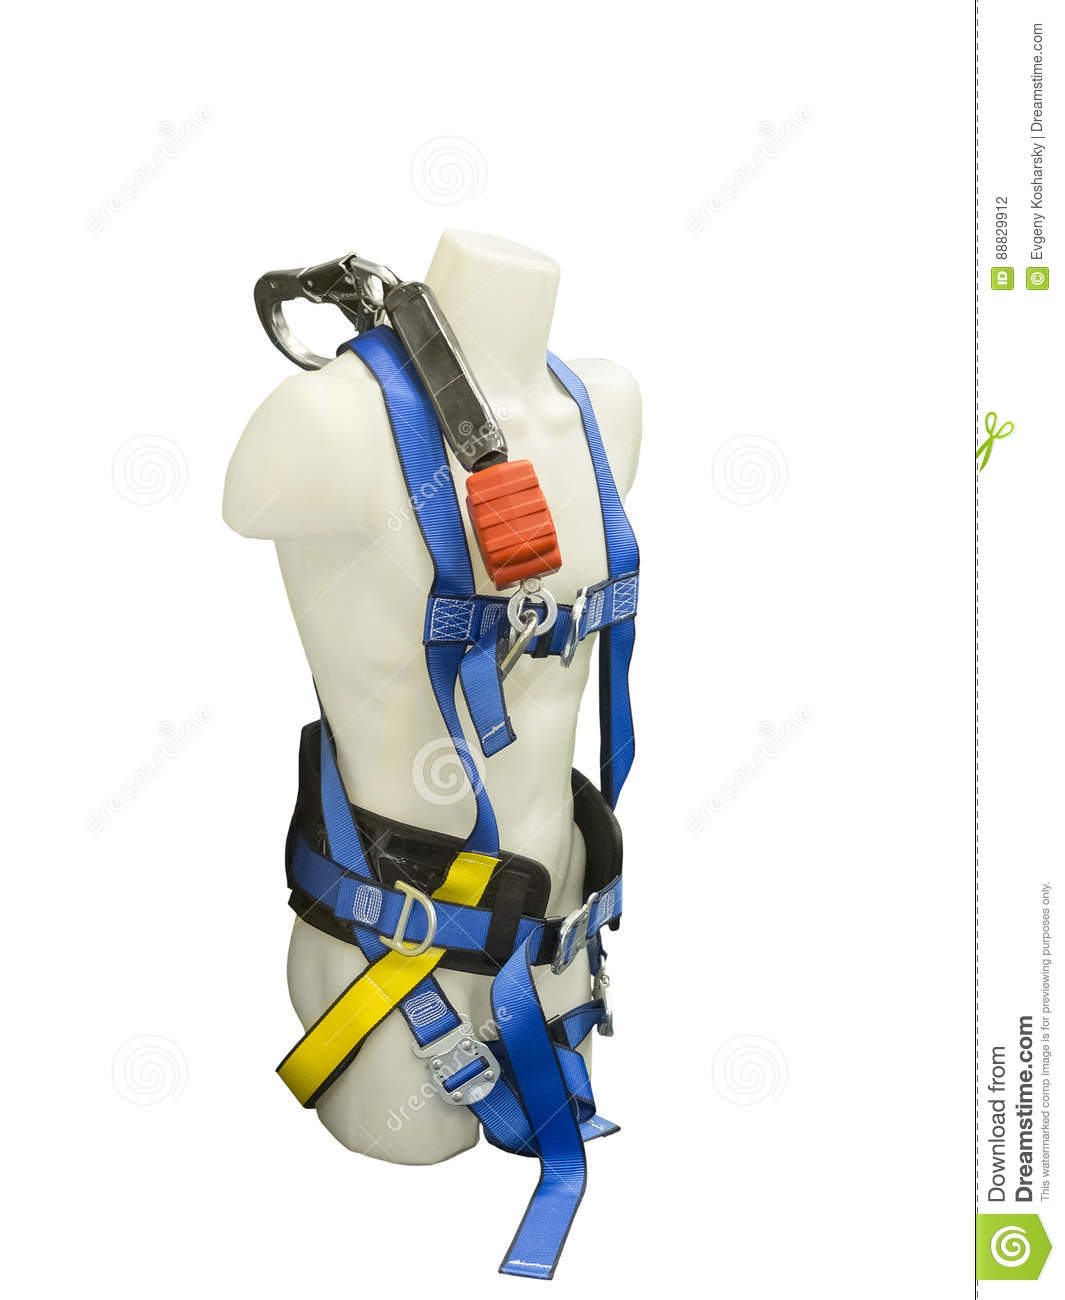 Mannequin In Safety Harness Equipment Stock Photo Image Of Download Adventure 88829912